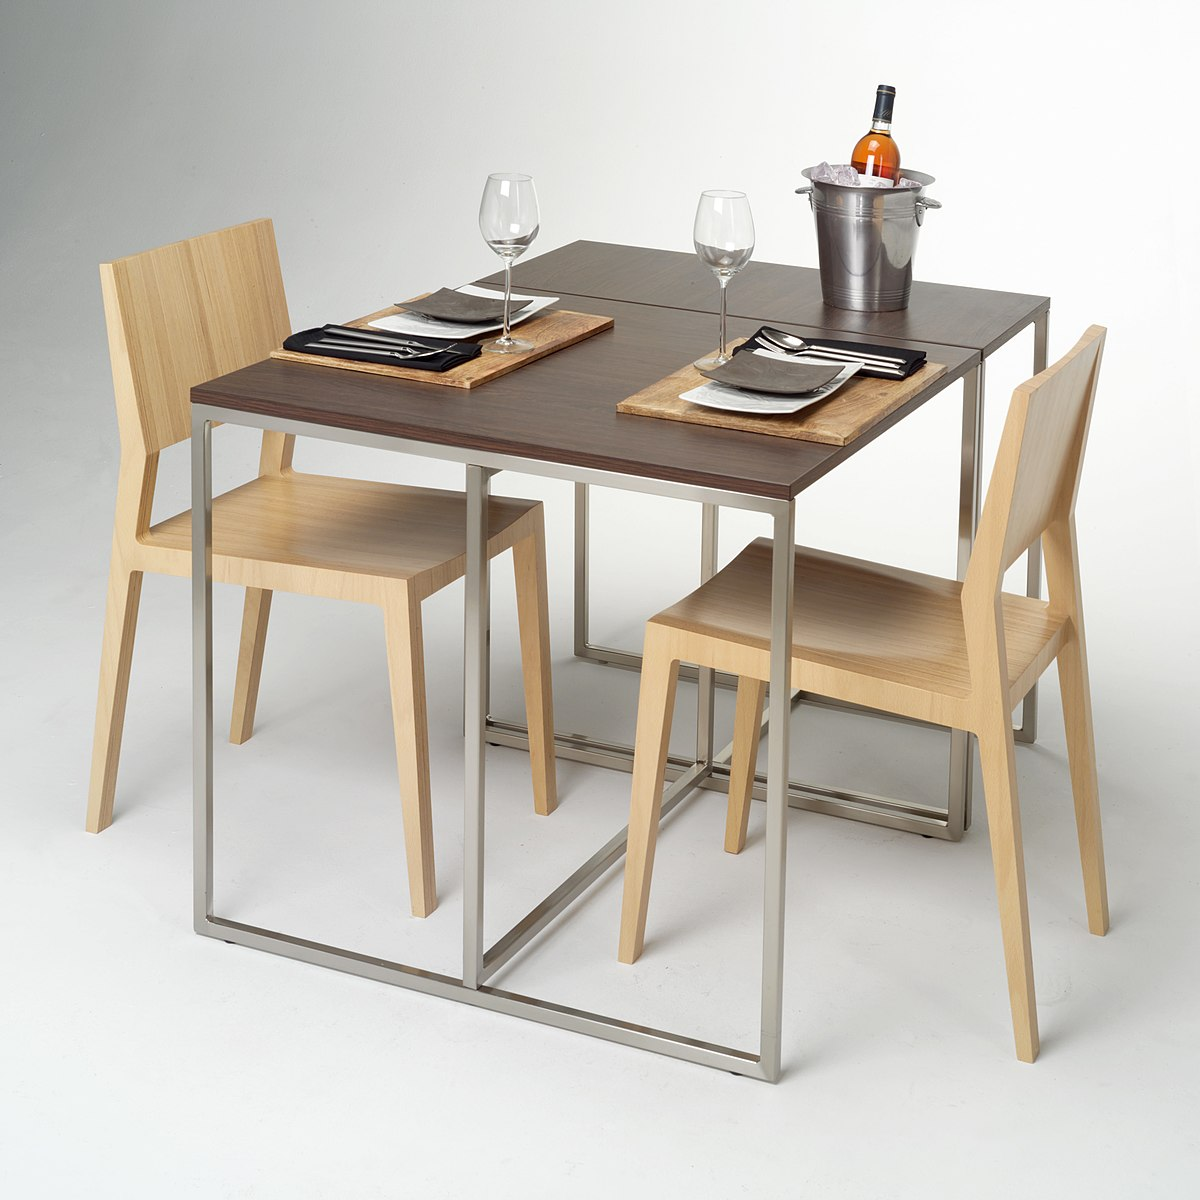 Furniture wikipedia for Dining table chairs